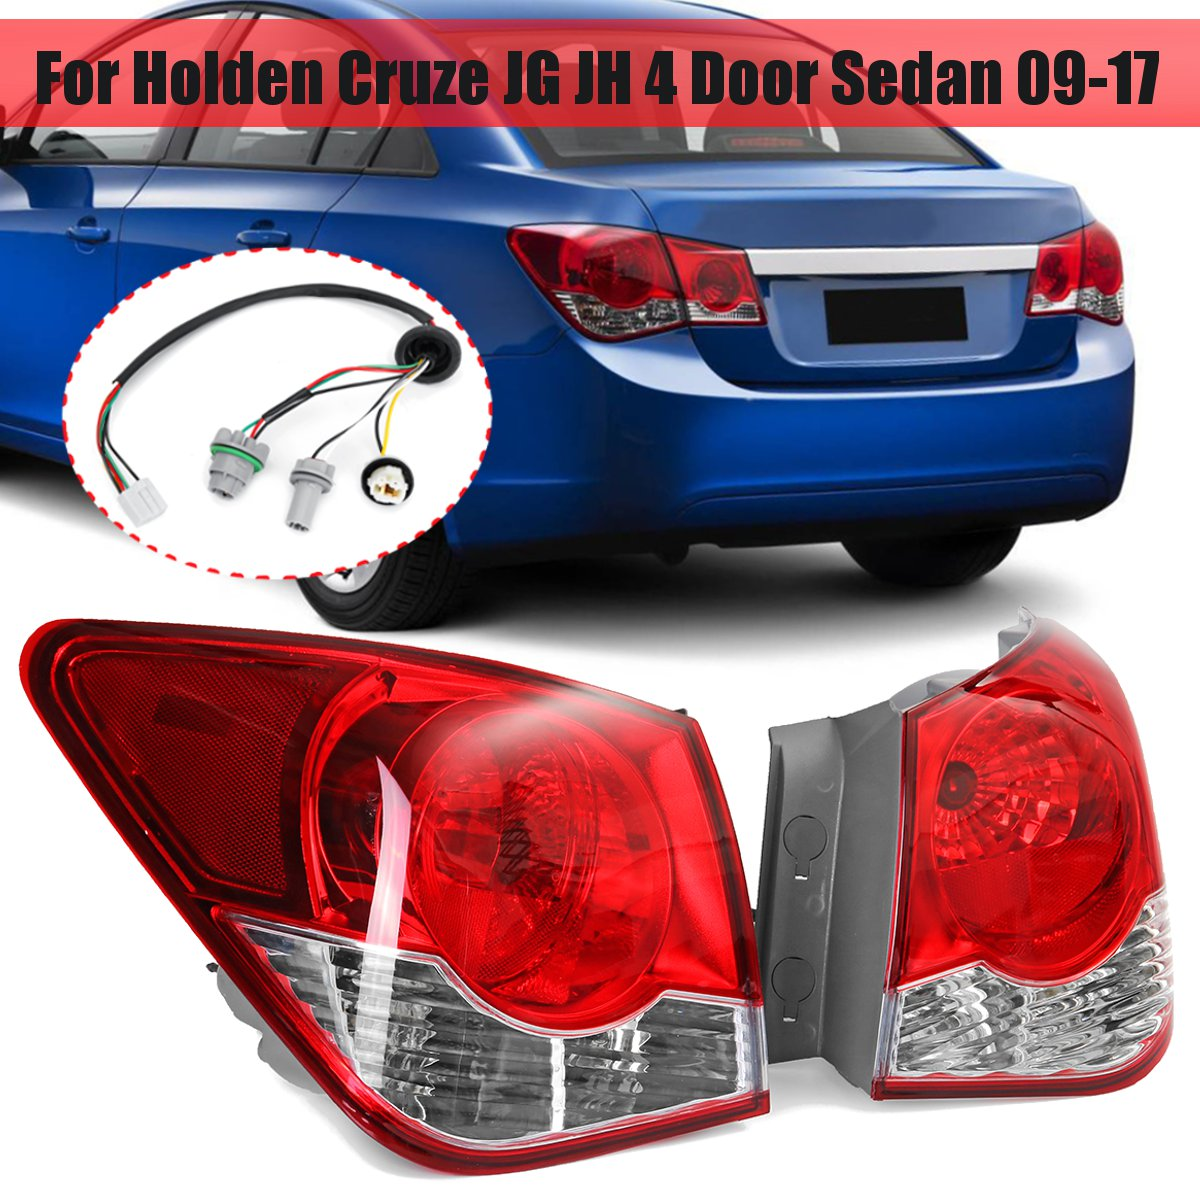 small resolution of 2 rear tail light with wire harness for holden cruze jg jh 4 door sedan 2009 2017 brake lamp for toyota tacoma